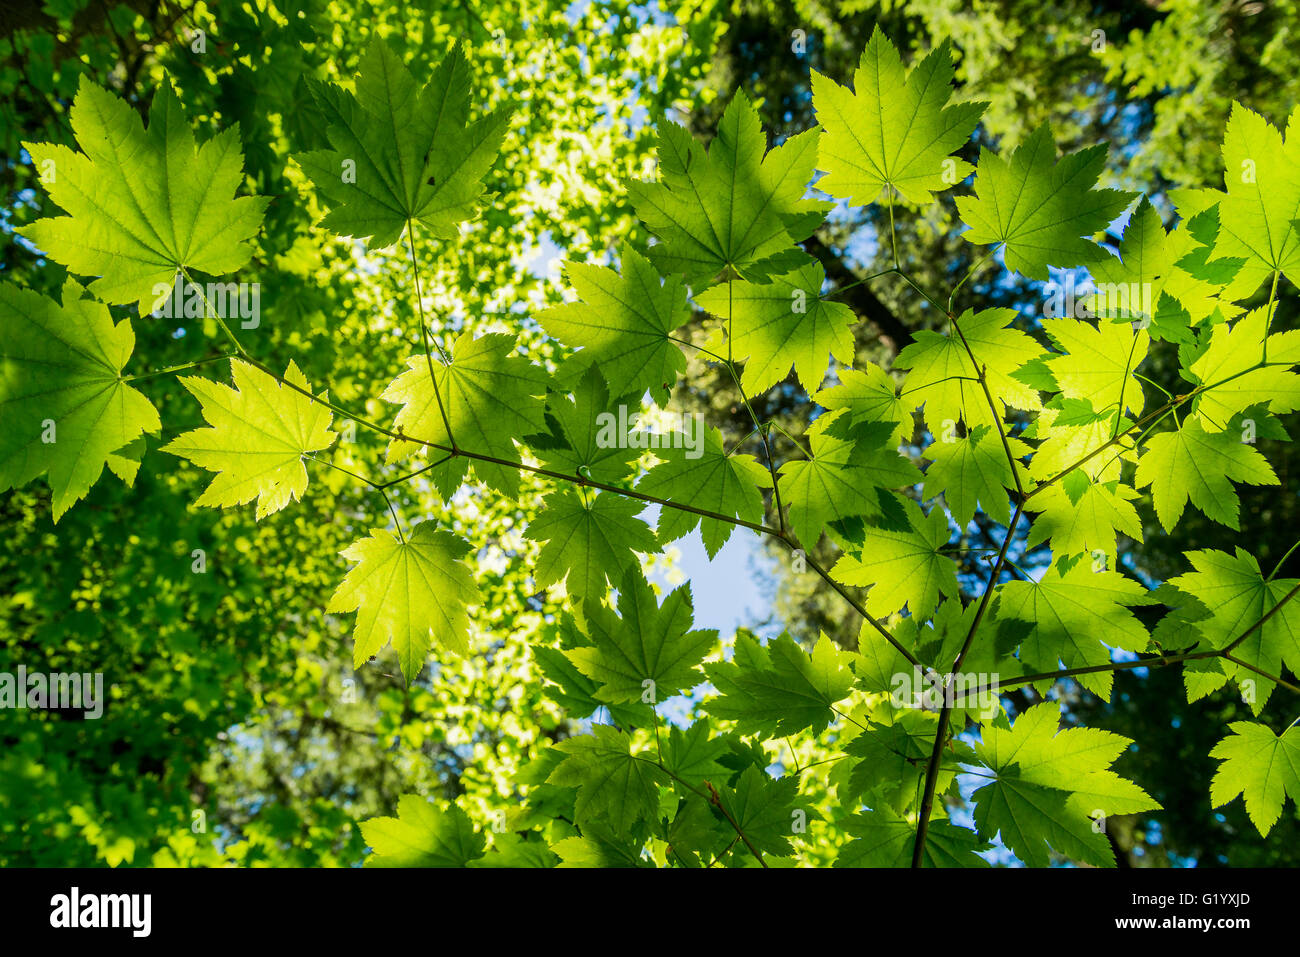 Maple tree green leaves - Stock Image